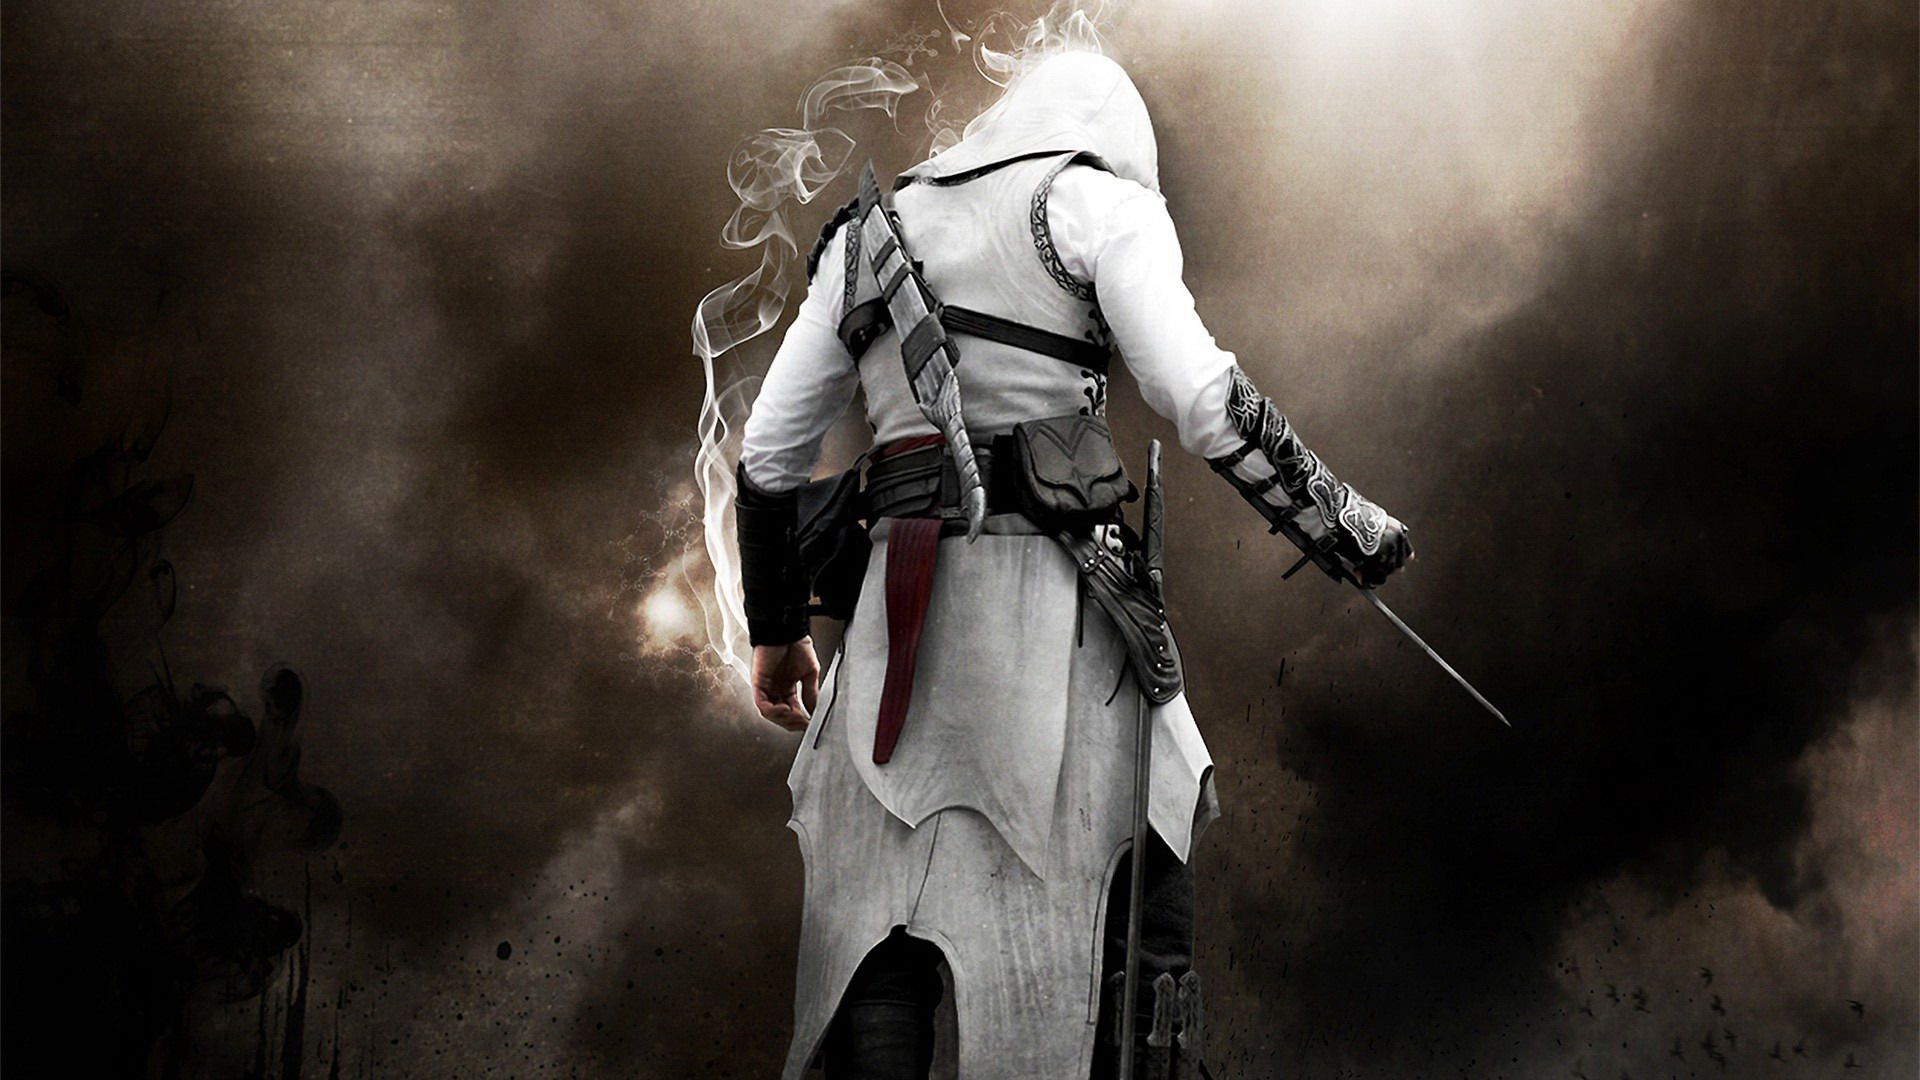 assassin's creed images